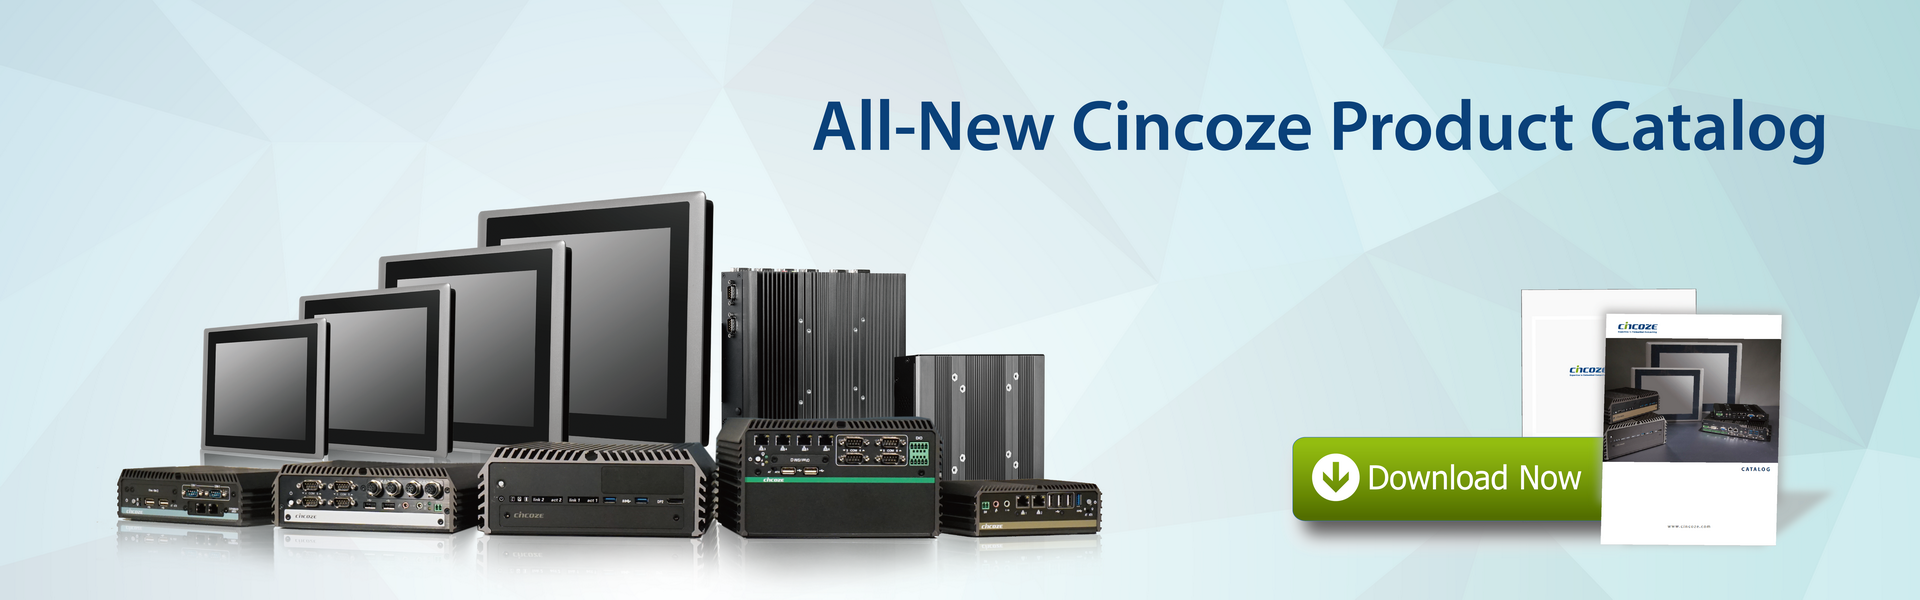 All-New Cincoze Product Catalog